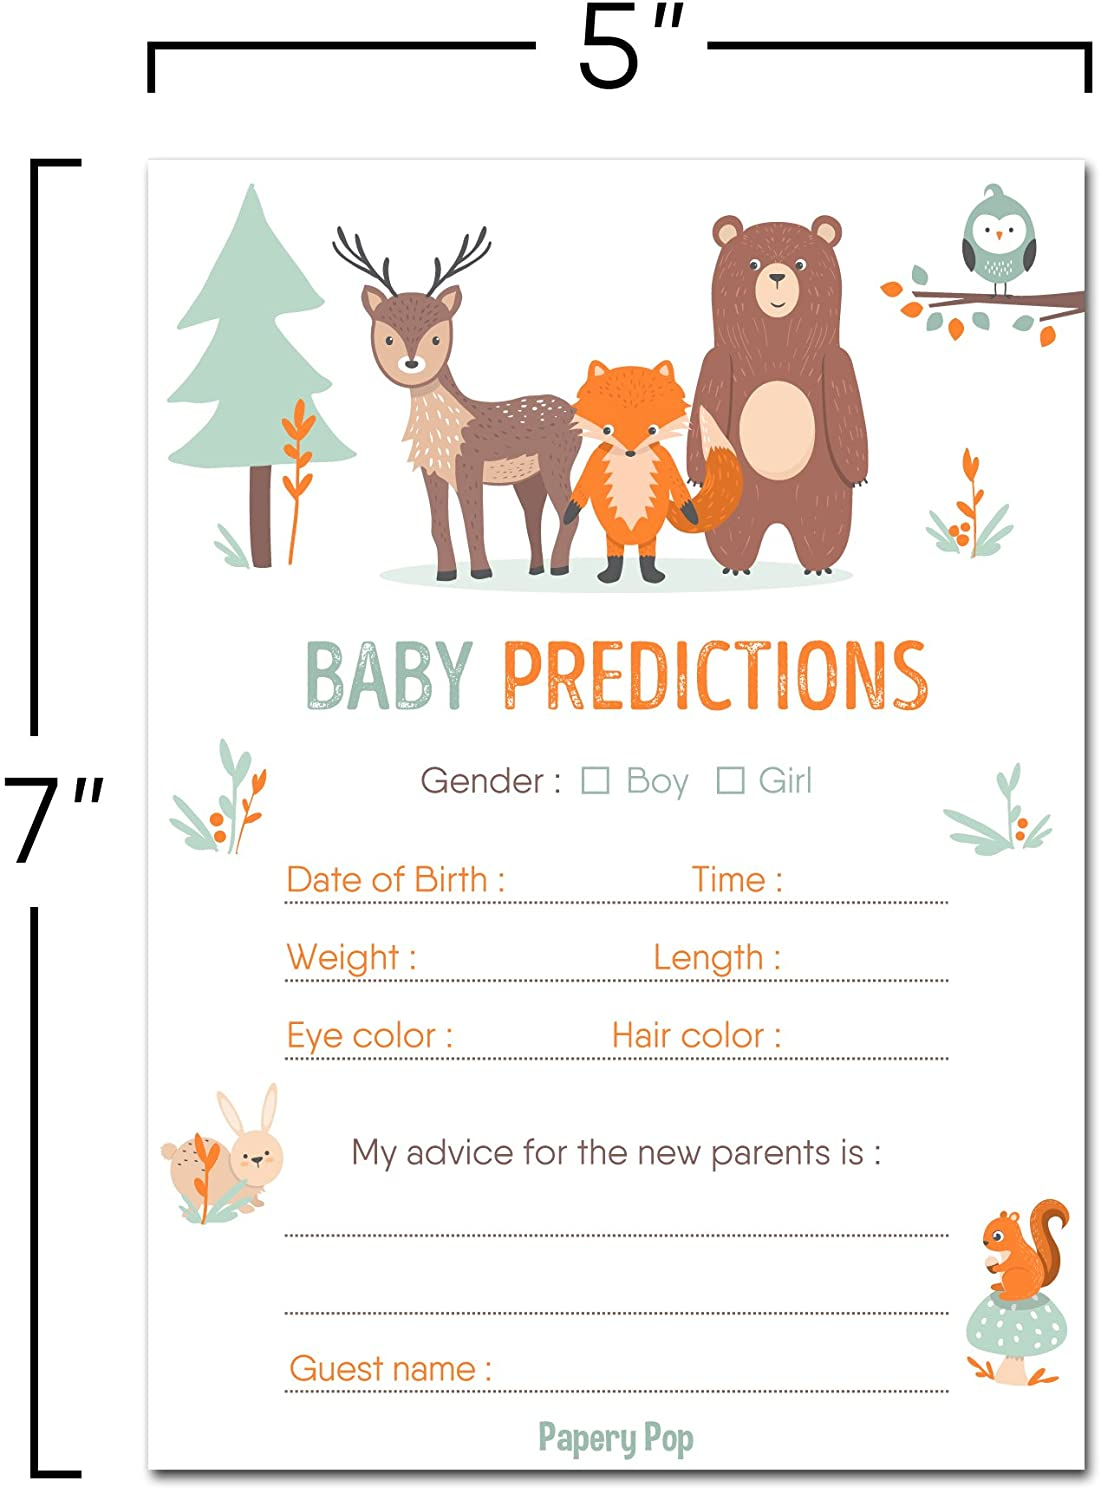 30 Baby Shower Prediction and Advice Cards Baby Shower Games Decorations Activities Supplies Invitations Boy or Girl Woodland Animals